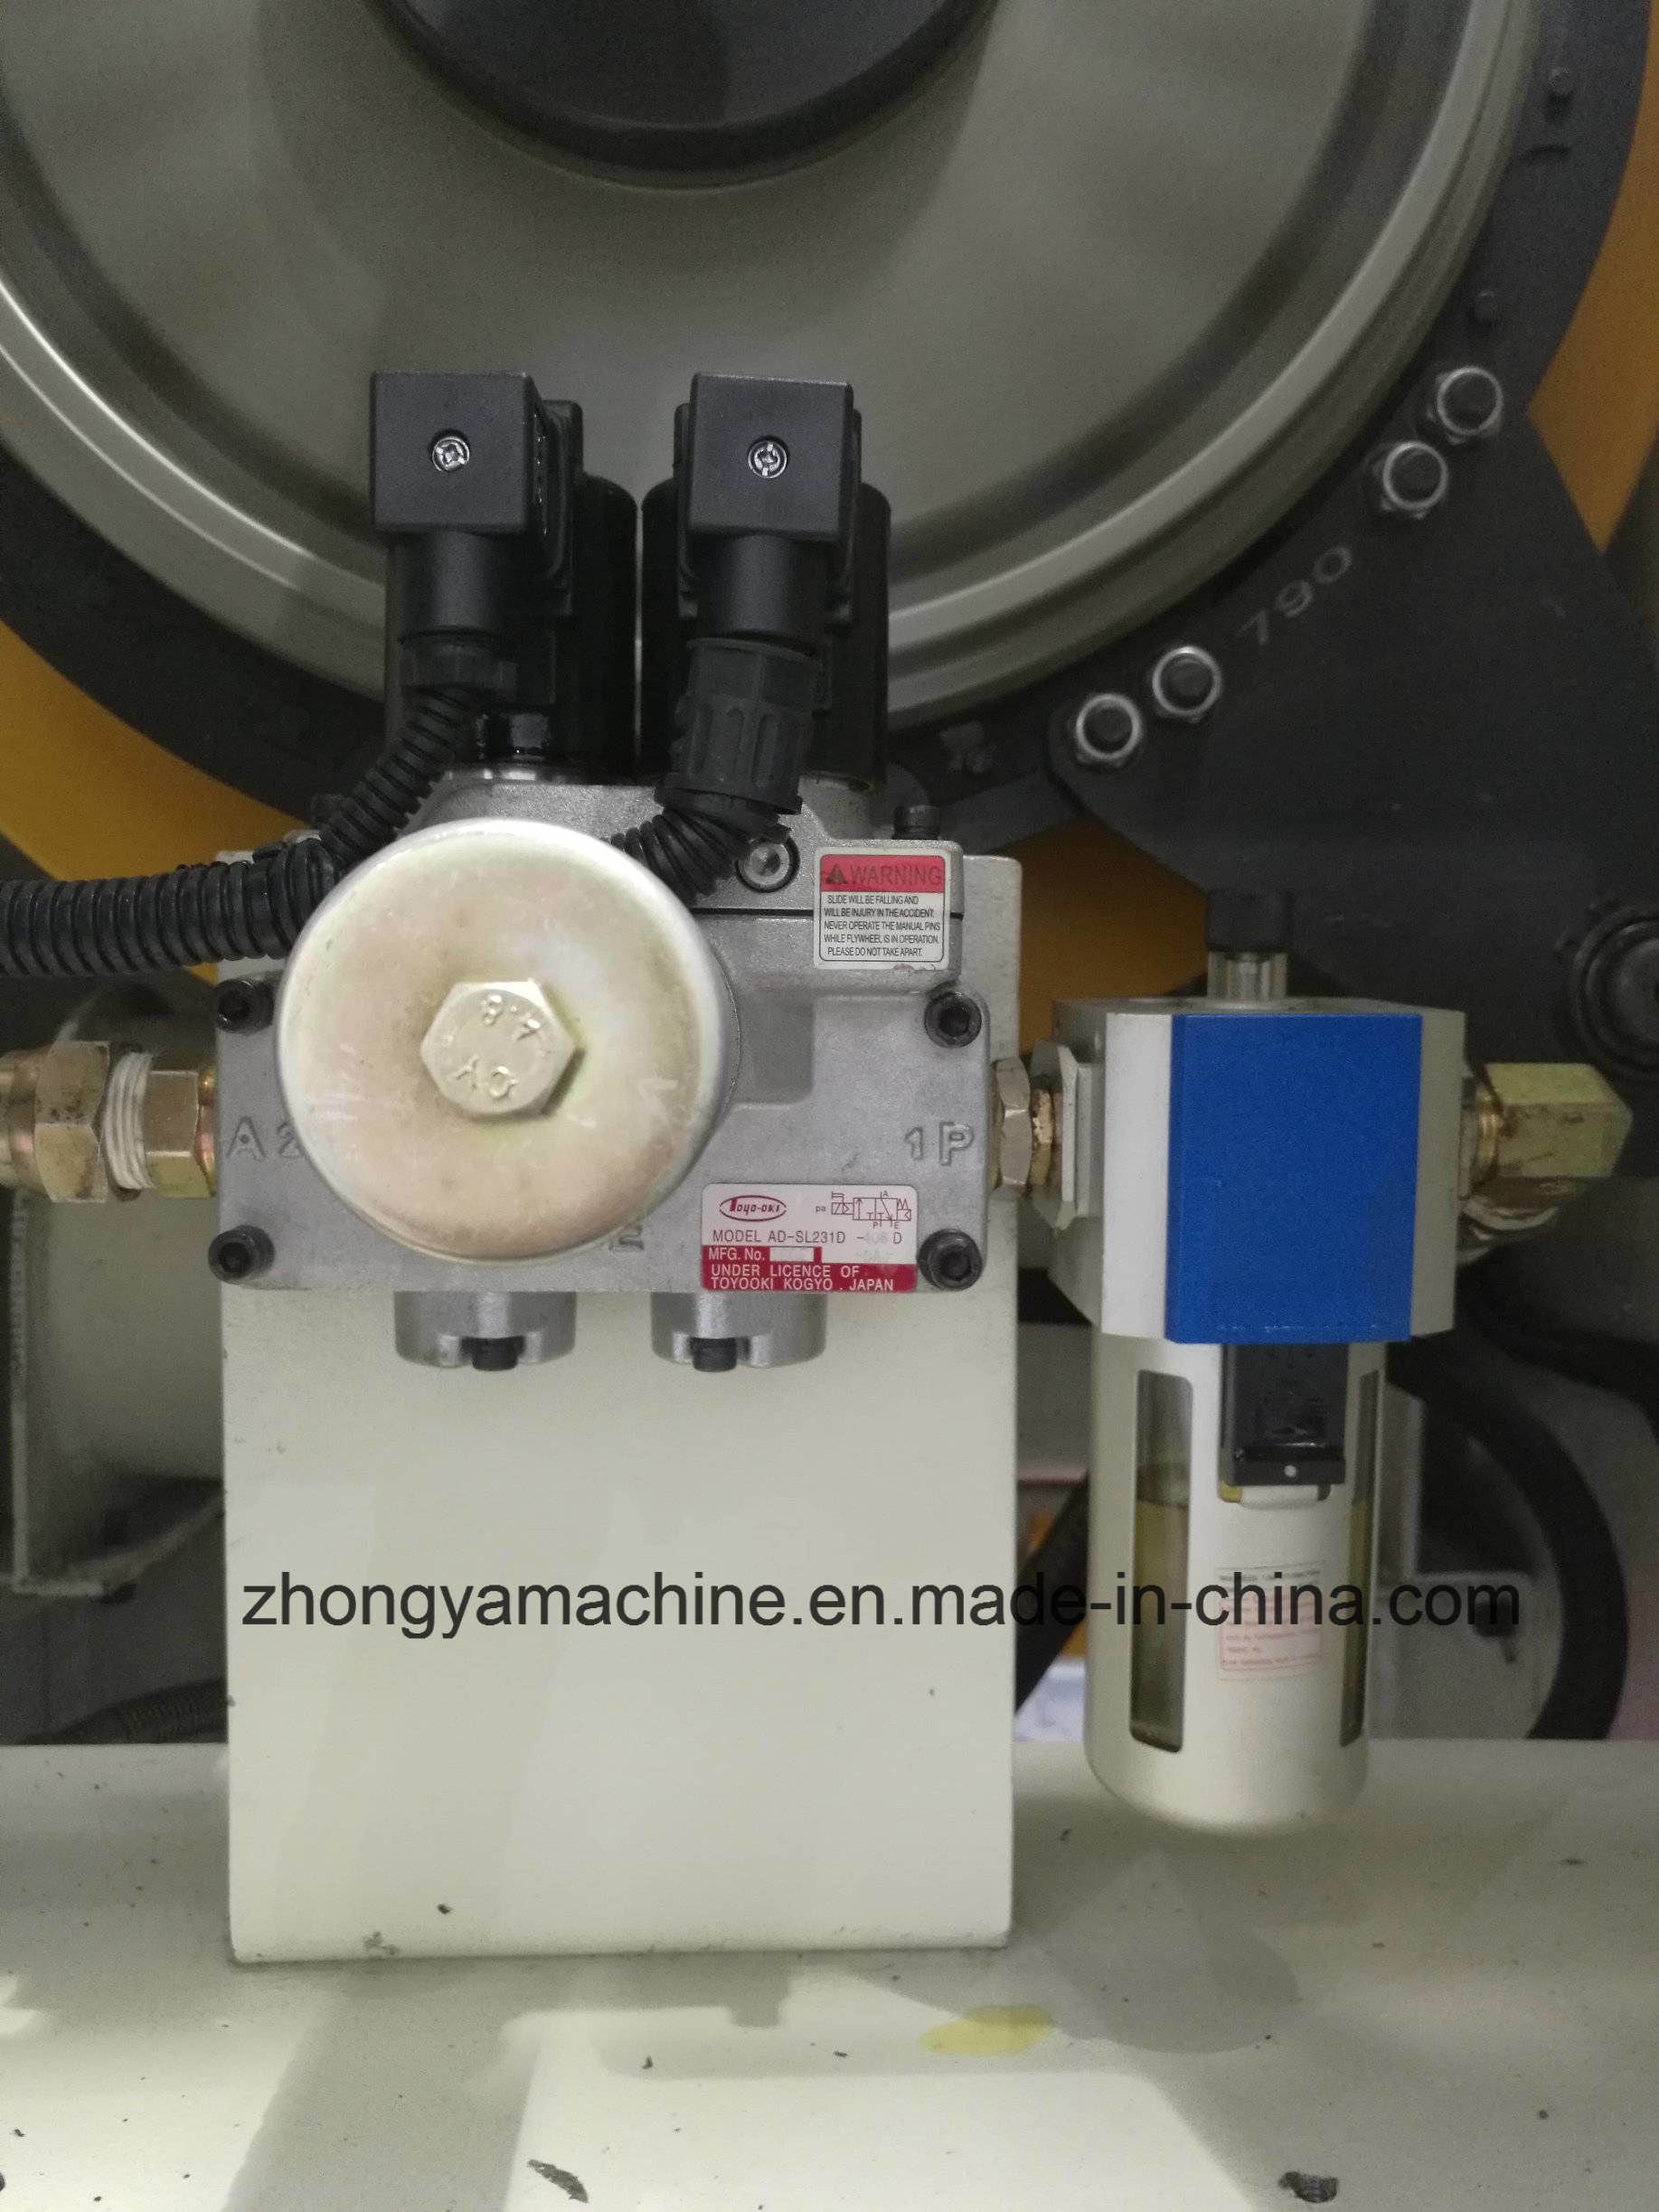 China High-Precision Pneumatic Power Press Machine Zya-80ton